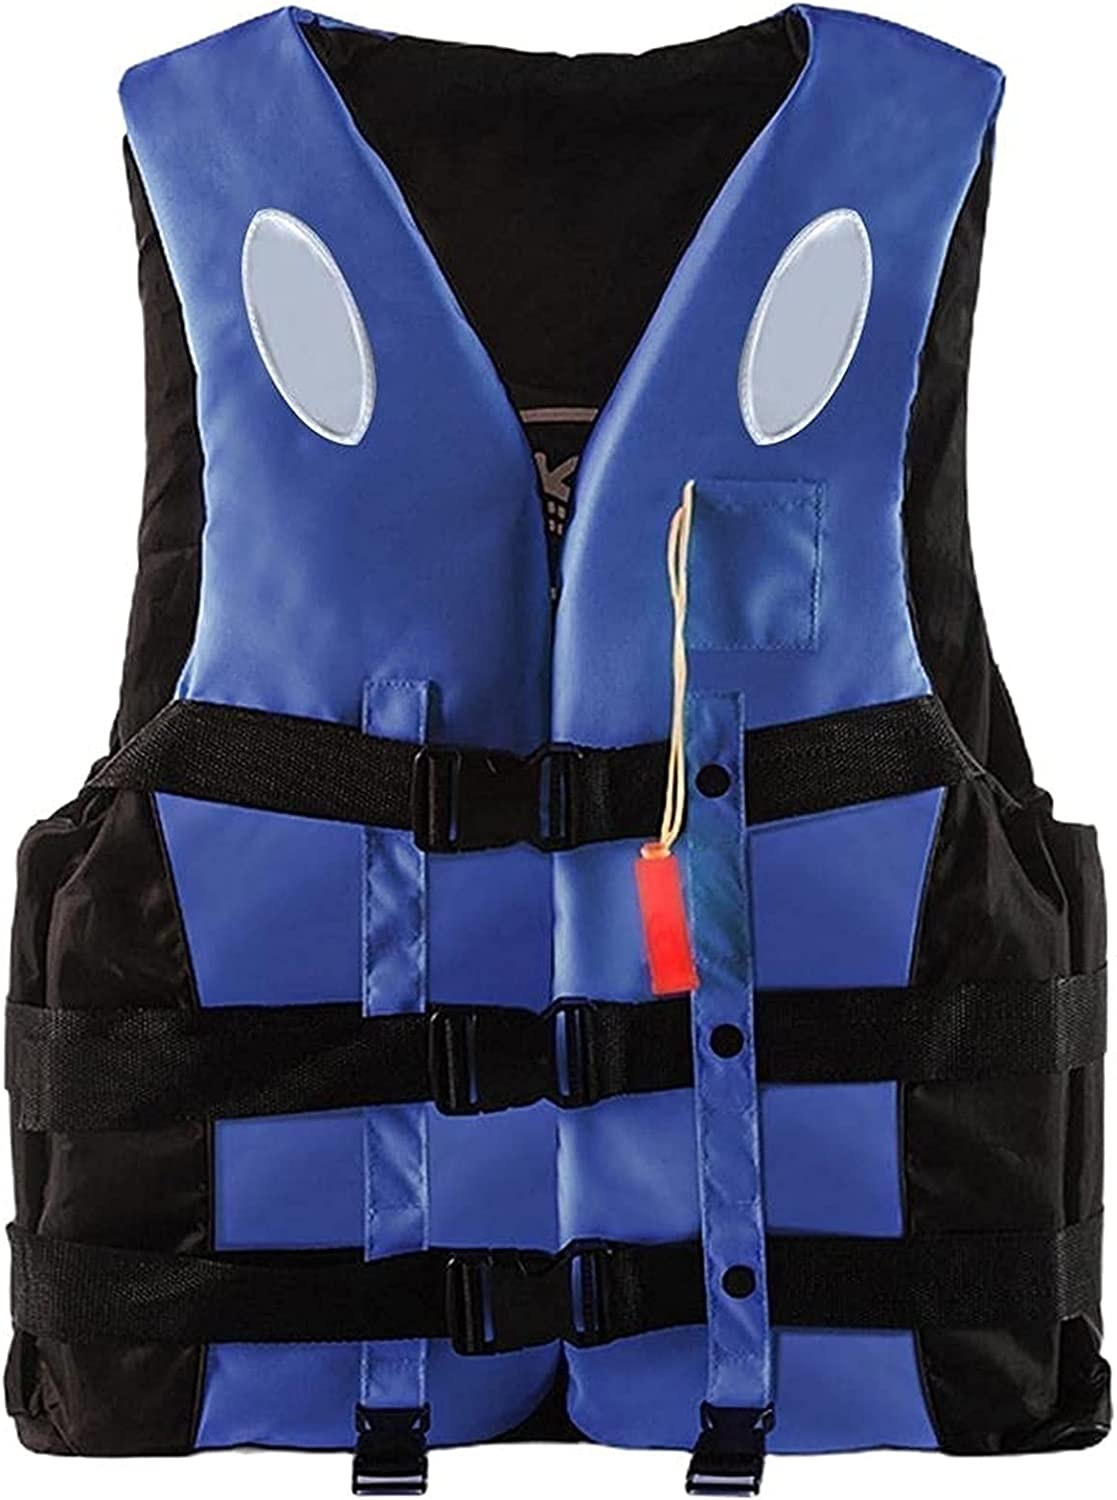 RUIQIAN Life Dealing full price reduction Jacket Adults Credence Children Lifeguard with